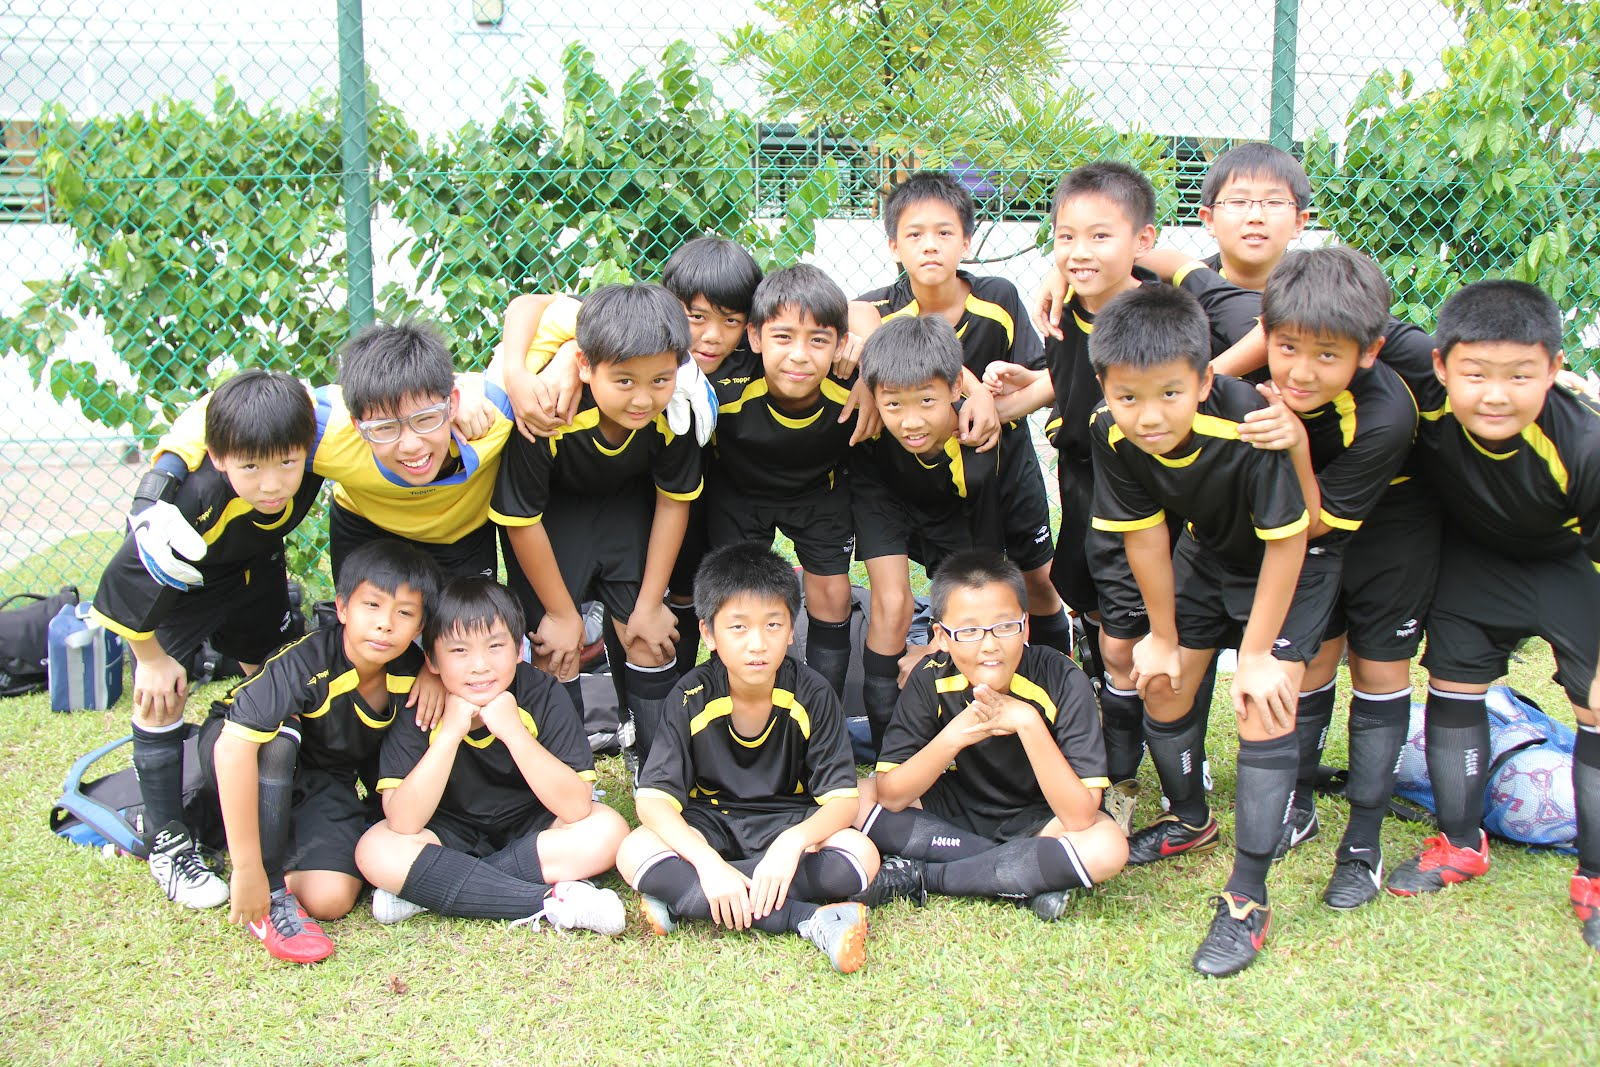 my hobby playing football Since my teen years have had interest in playing soccer as my personal activity  and hobby playing football and talent development starts in the early years.